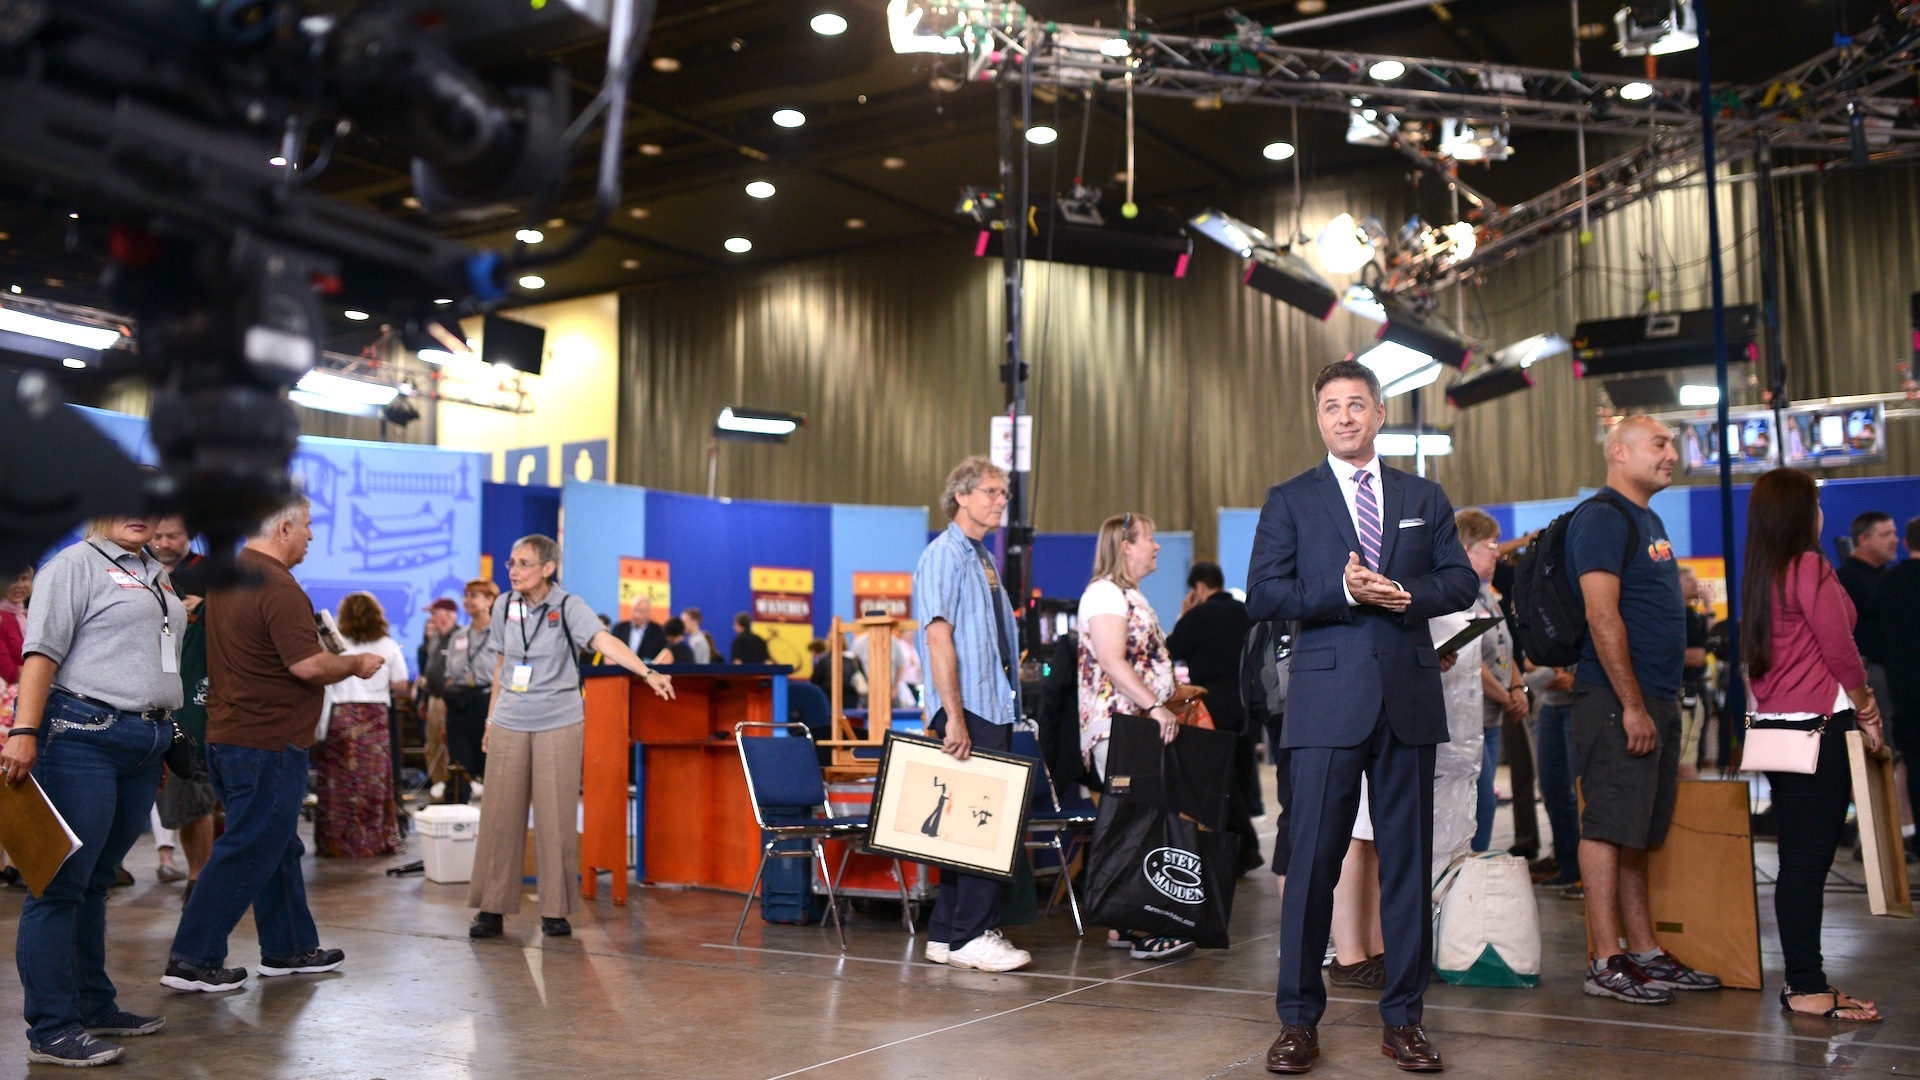 http://www-tc.pbs.org/prod-media/antiques-roadshow/article/images/Mark-on-old-set_1920x1080-cc.jpg